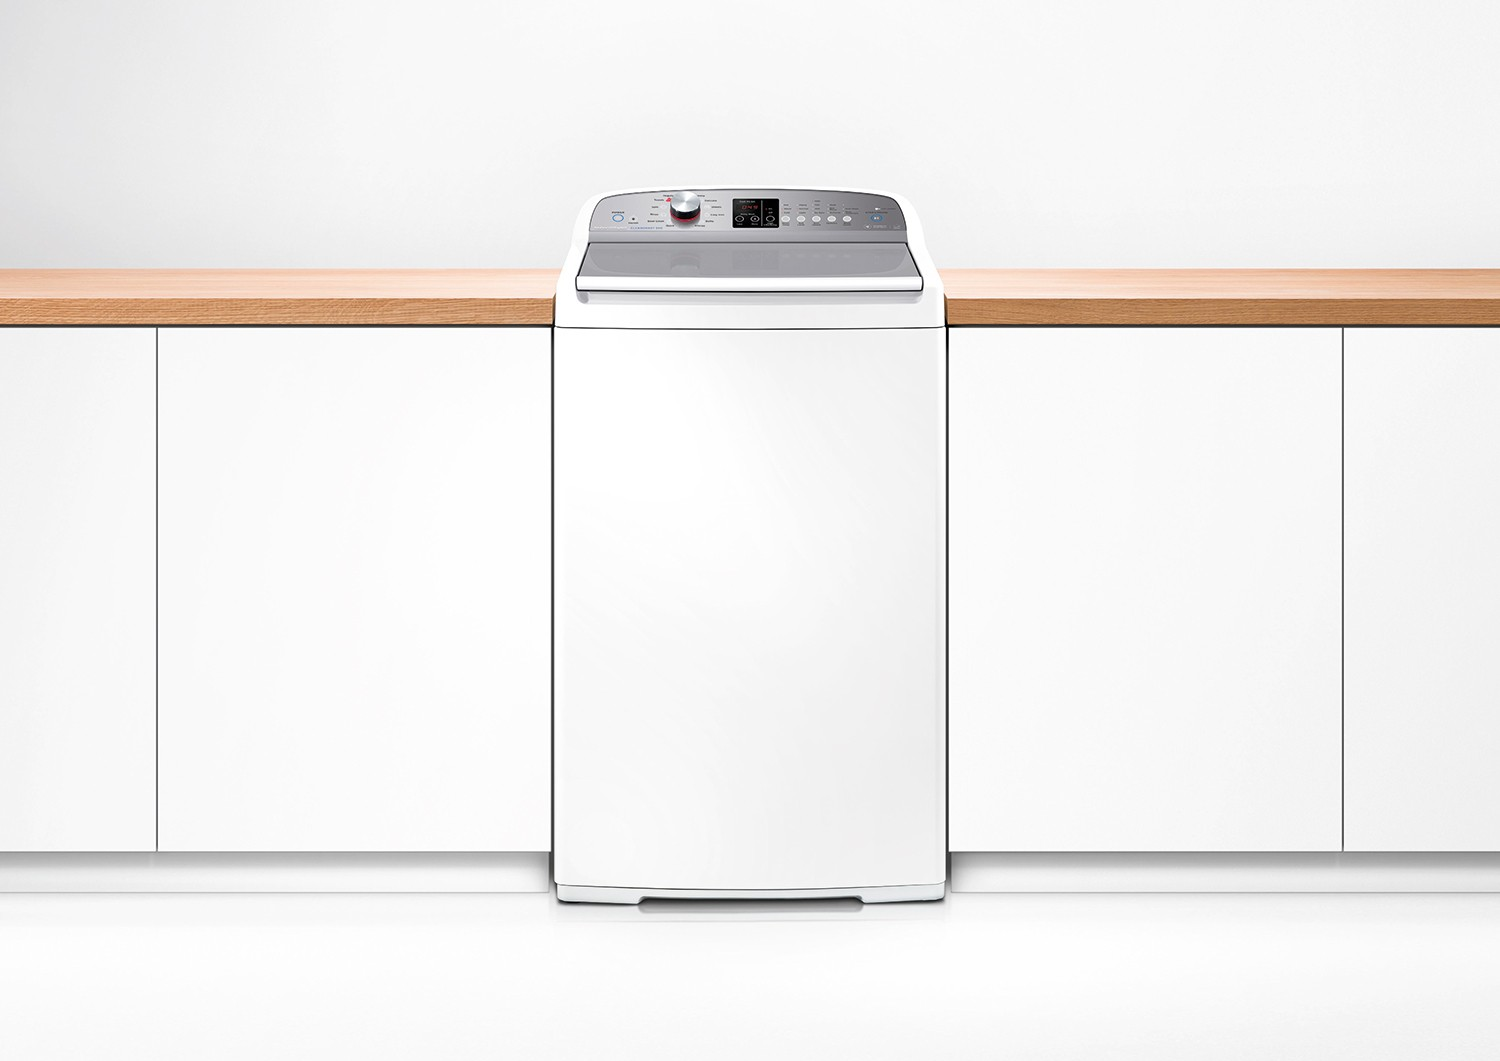 Top Loading Washing Machines at Harvey Norman